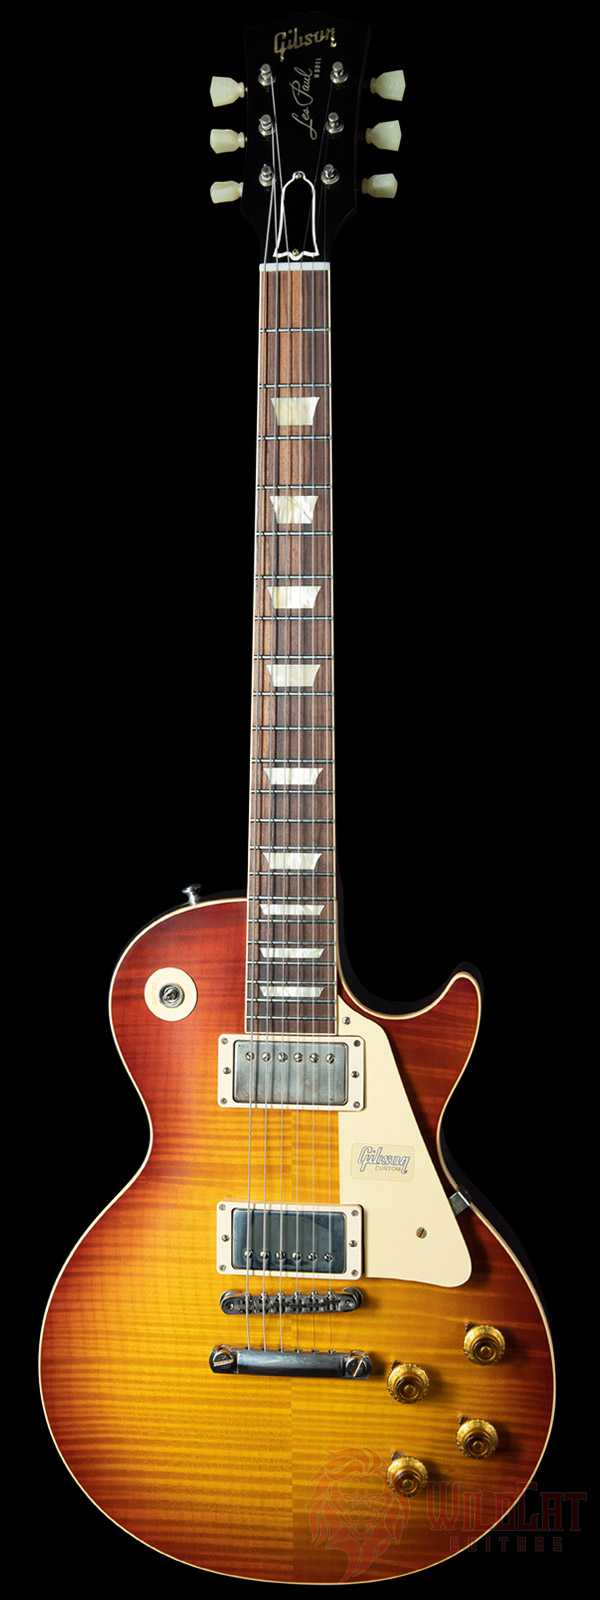 Gibson Custom Shop 60th Anniversary 1959 Les Paul Standard VOS Cherry TeaBurst